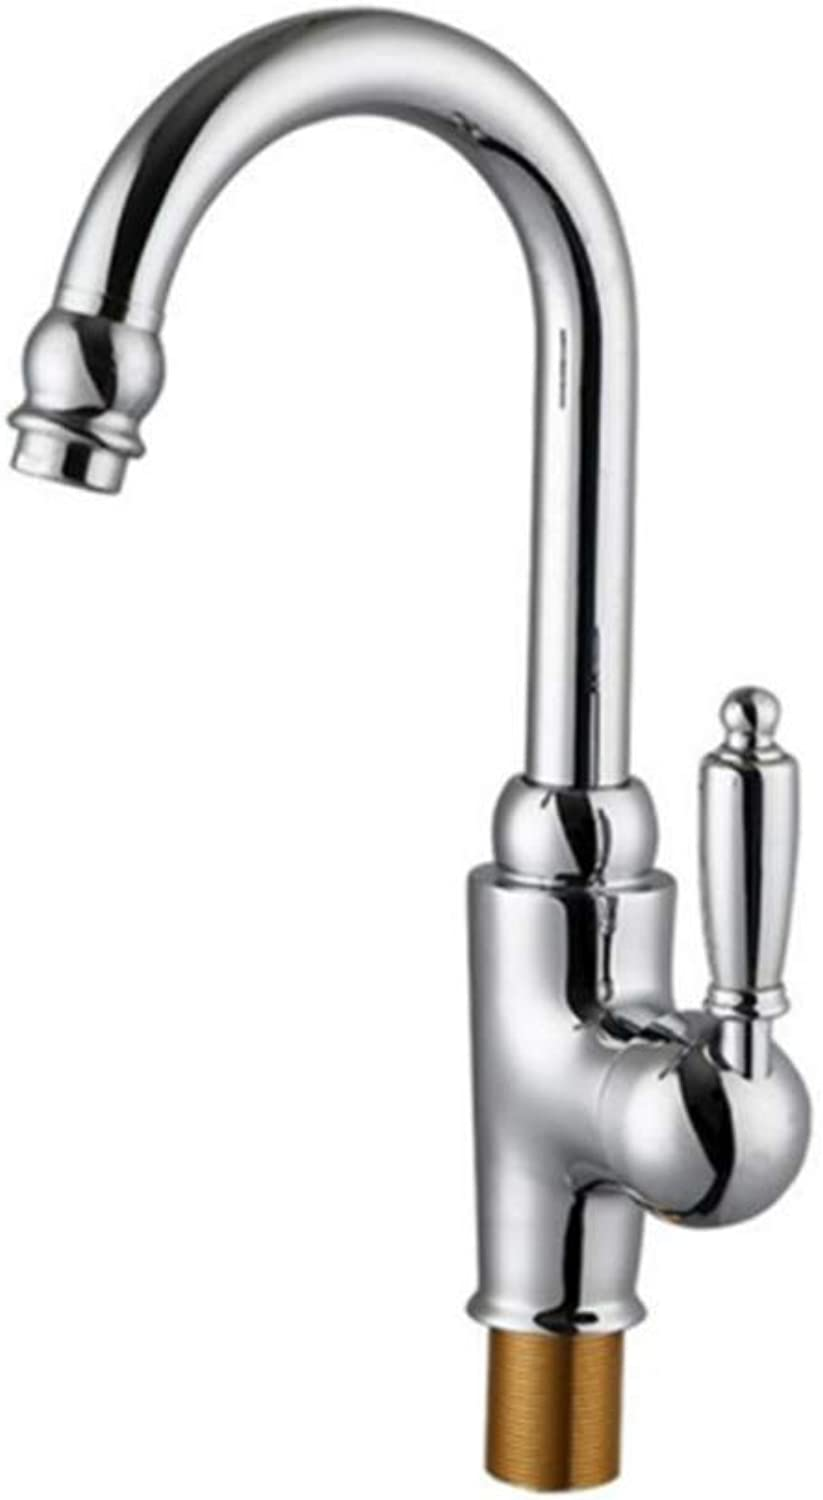 Taps Kitchen Basin Mixer Pull Out Mixerkitchen Faucet Chrome Plated Copper Single Handle Sink Faucet Tap in The Kitchen Hot and Cold Mixer